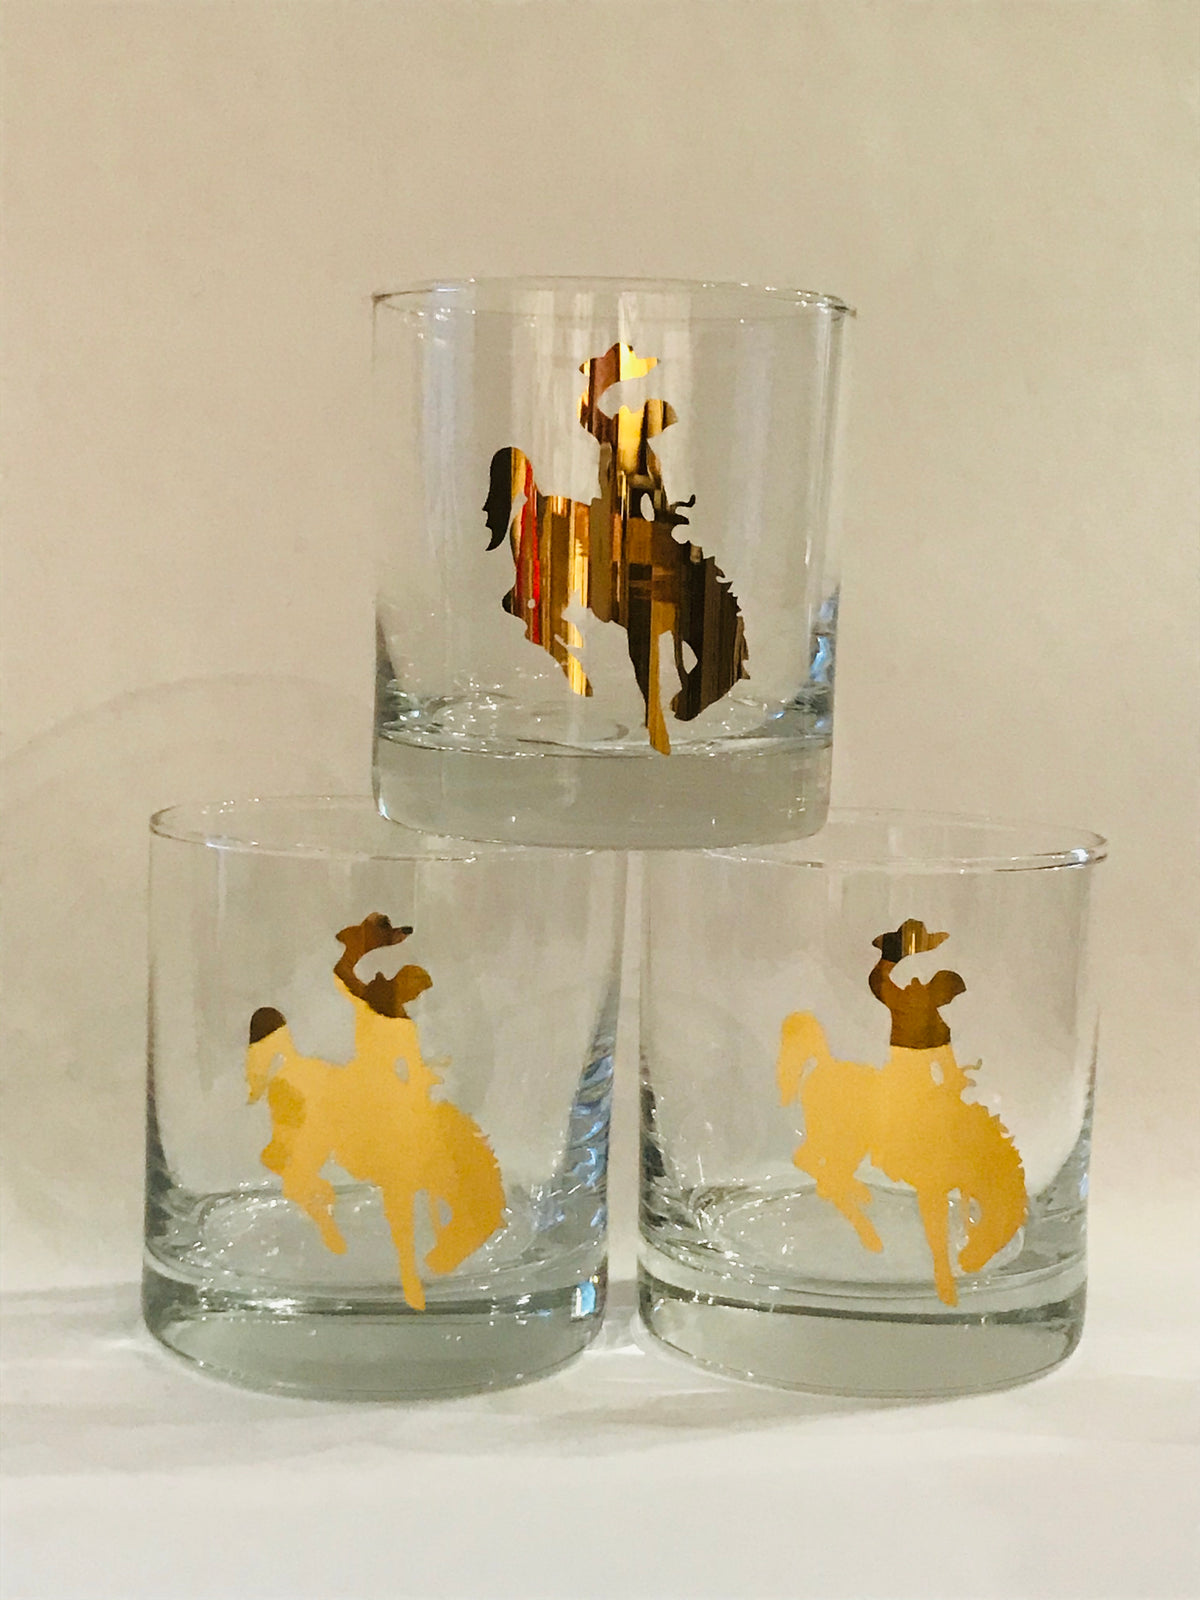 20 K Gold Bronco Rocks / Old Fashioned Glasses